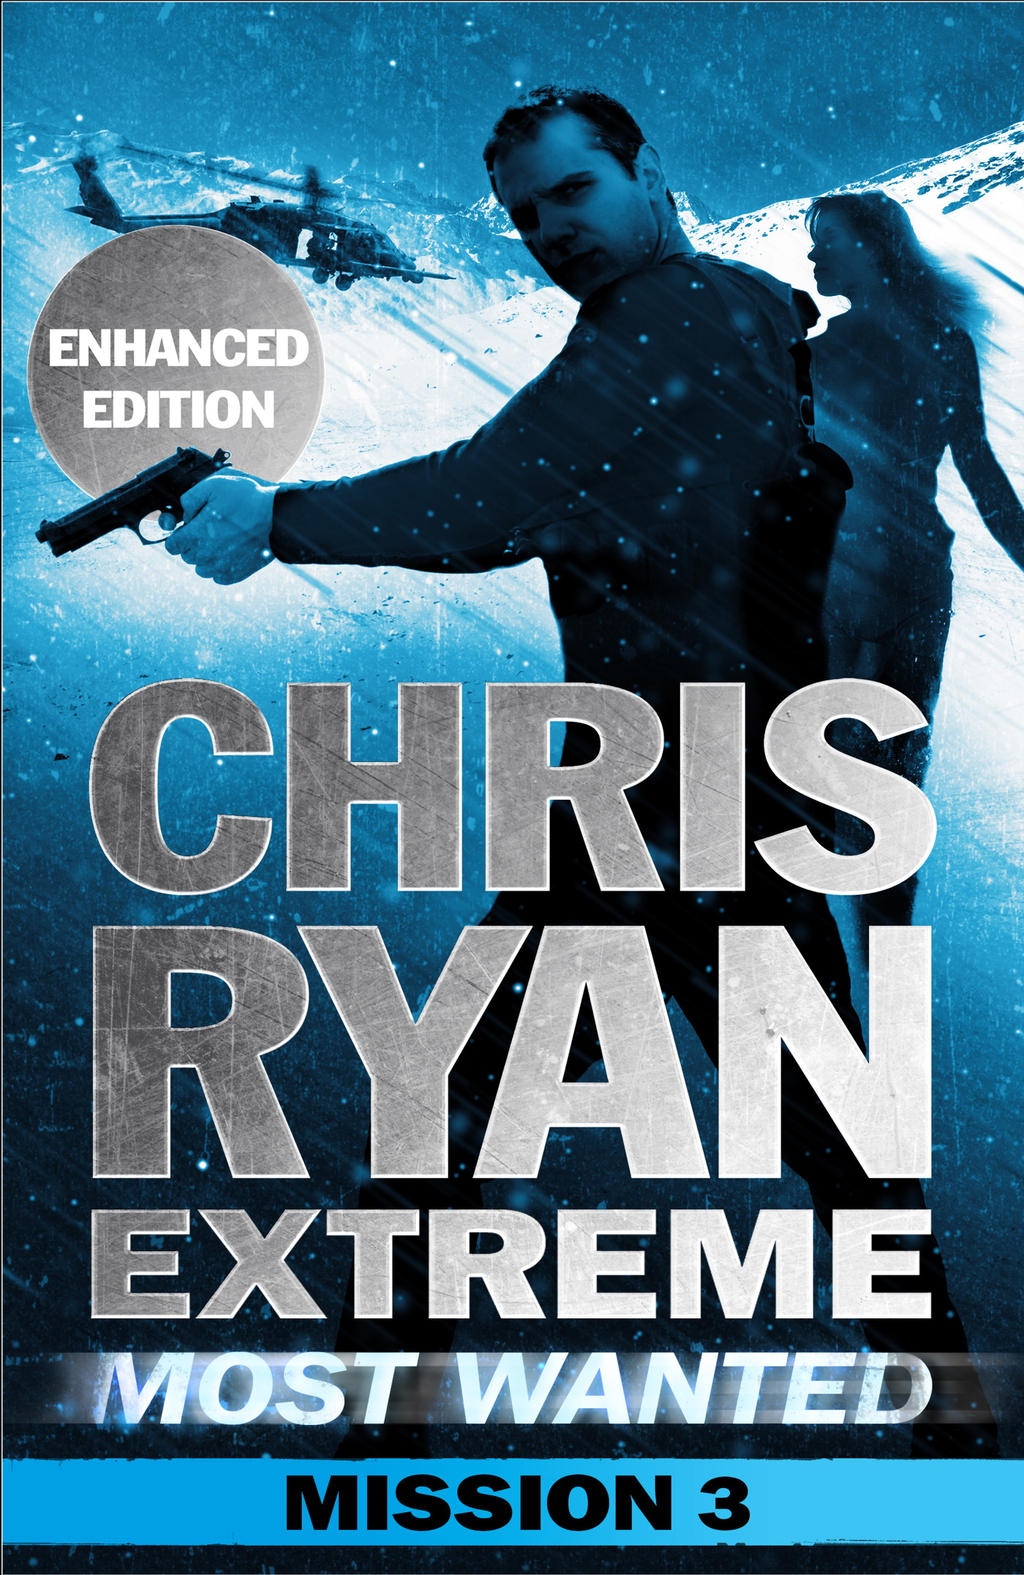 Most Wanted Mission 3 Chris Ryan Extreme Series 3